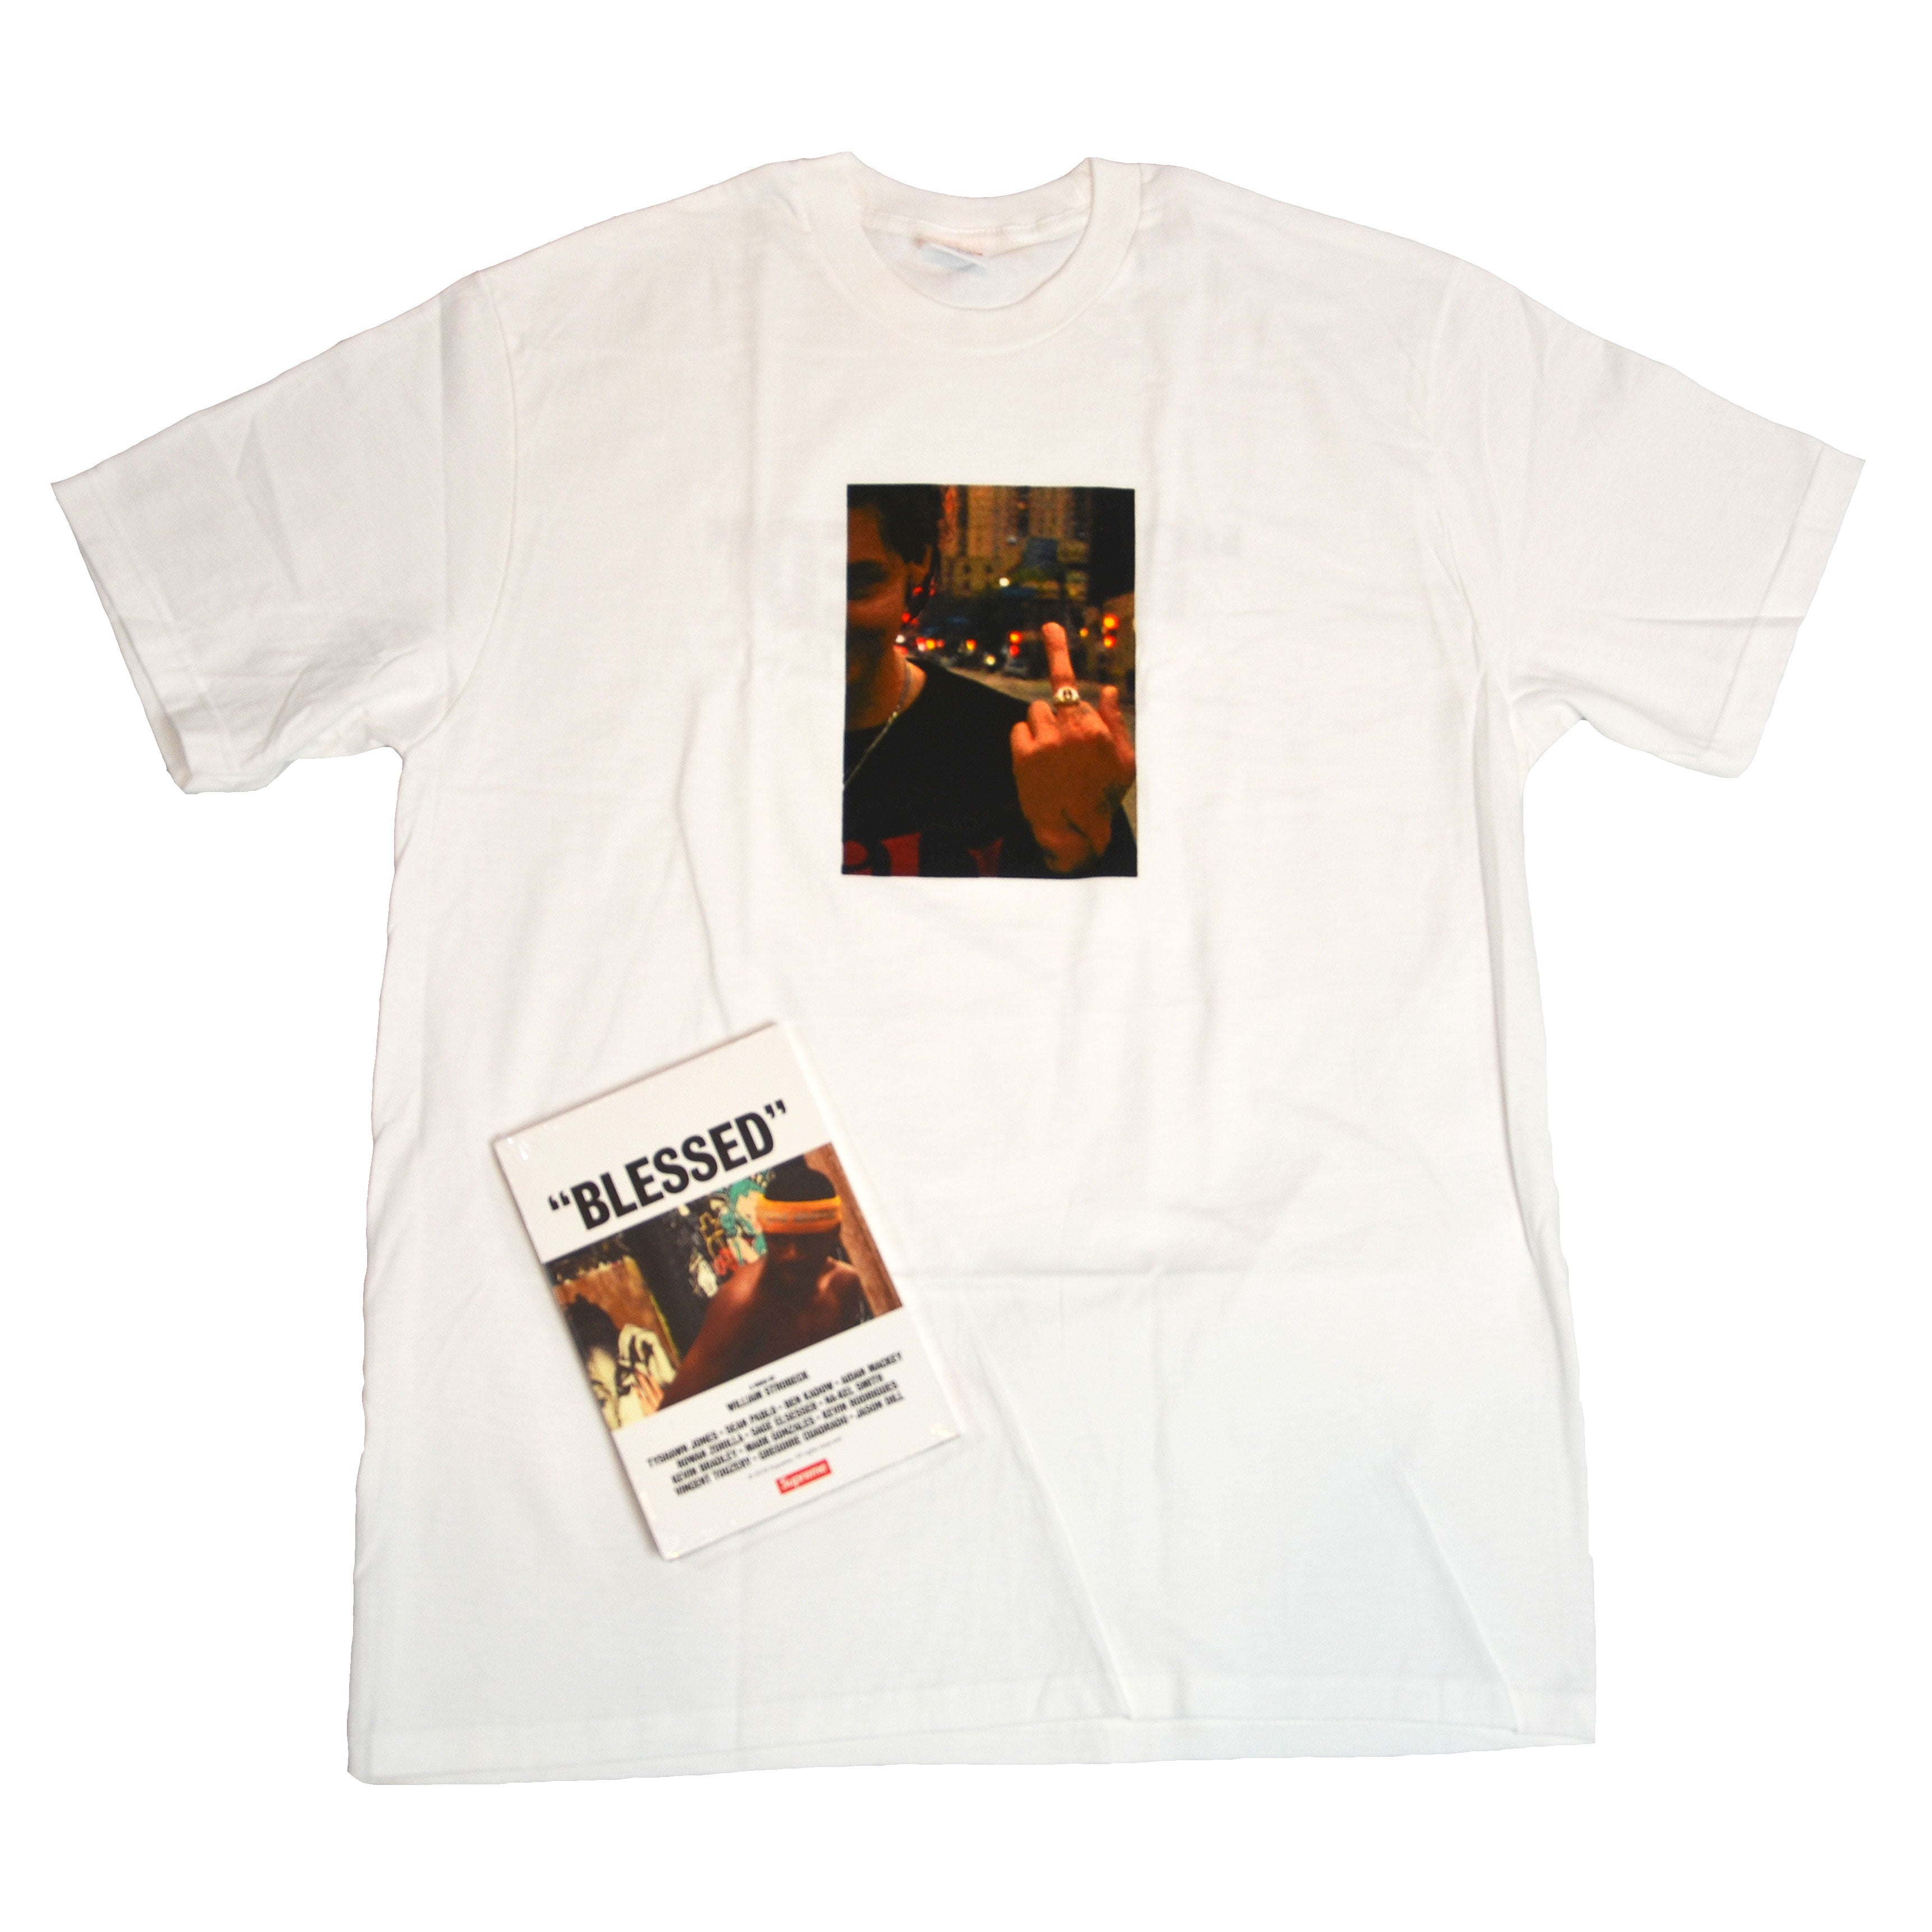 Supreme Blessed Tee with DVD